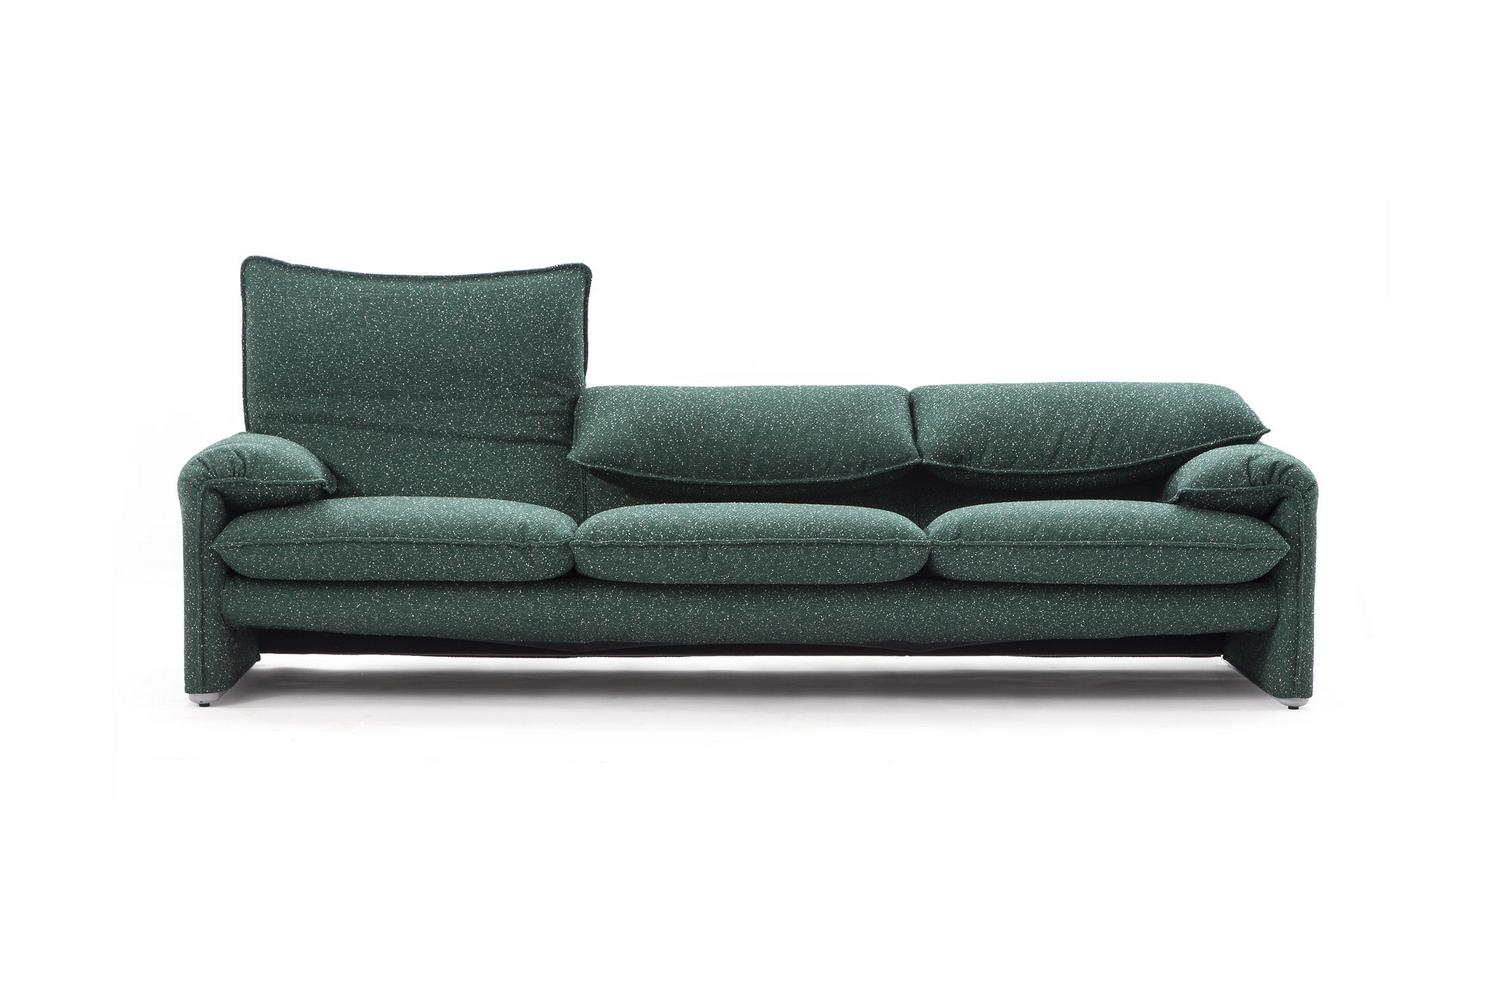 a sofa in the forties cushions black and white 675 maralunga 40s by vico magistretti for cassina